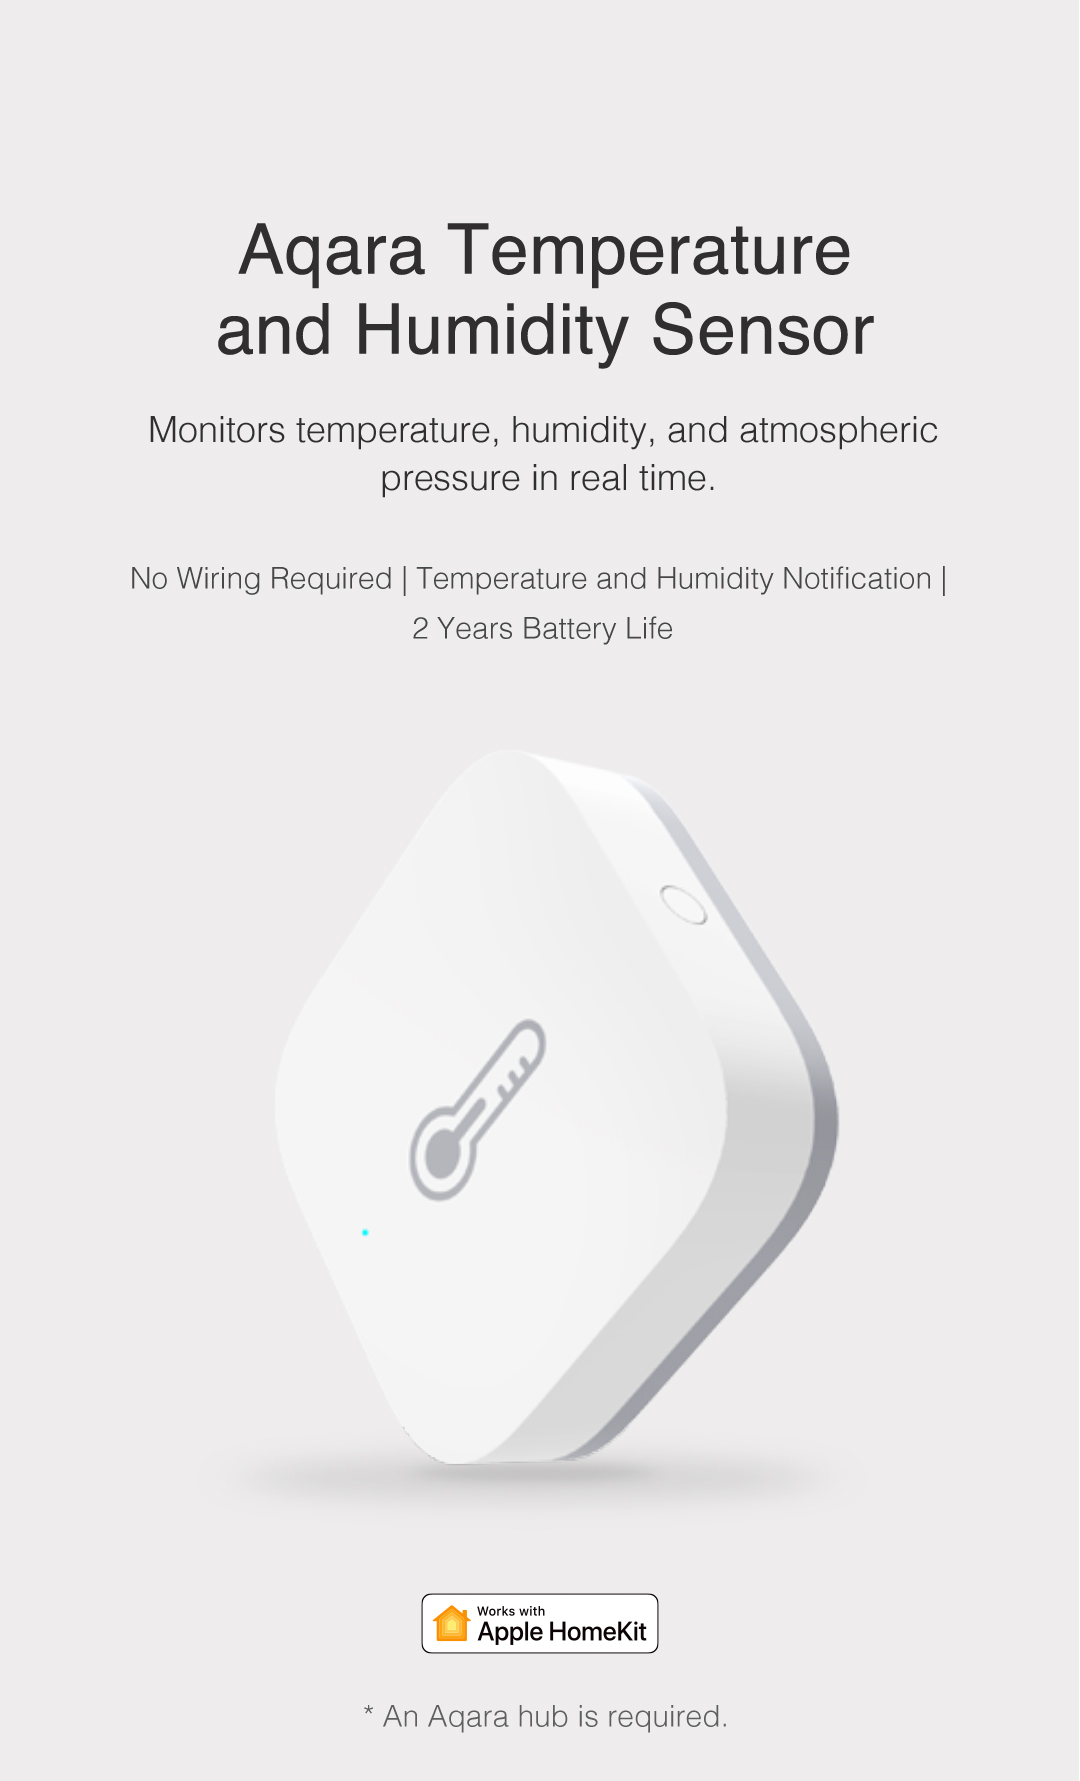 Aqara Temperature and Humidity Detector - Monitors temperature, humidity, and atmospheric pressure in real time